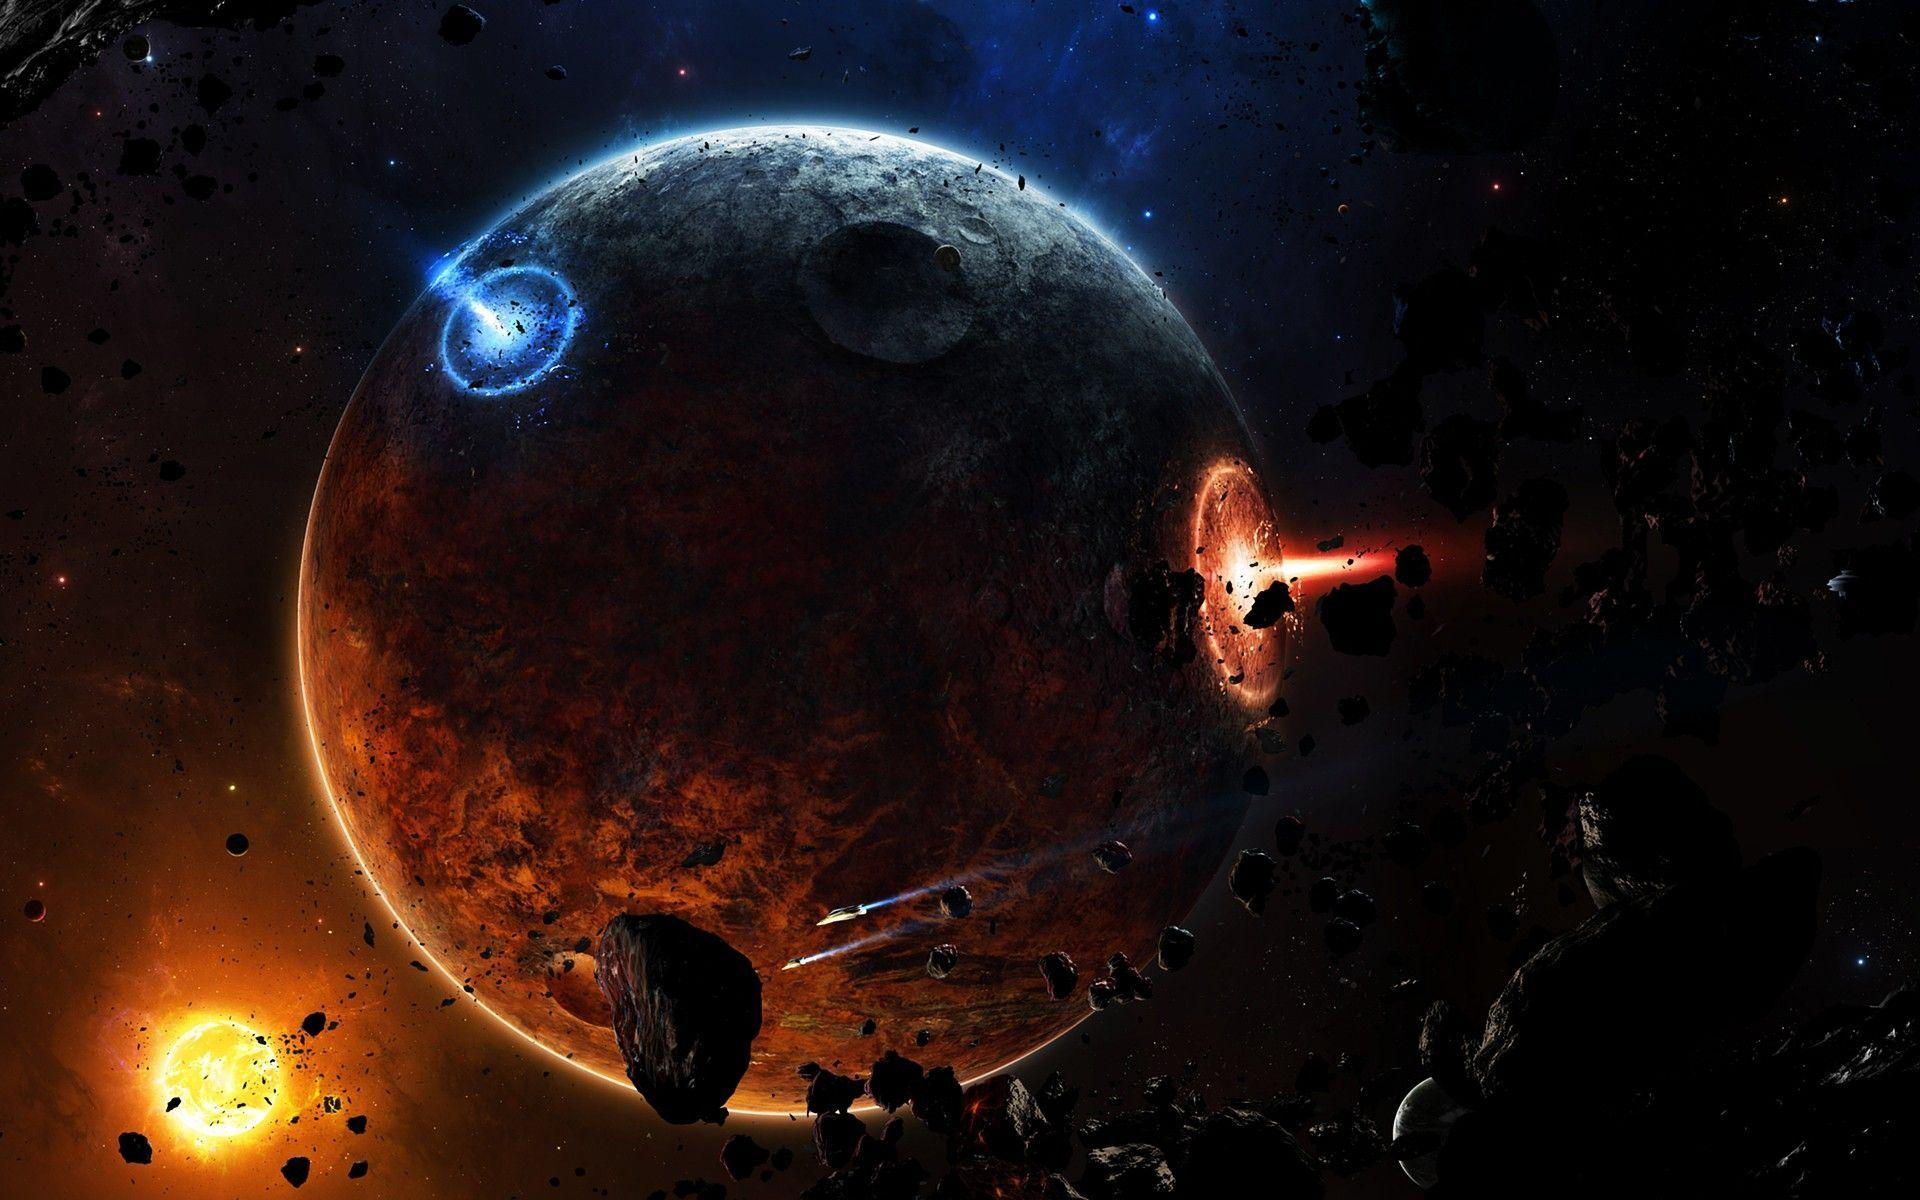 Image - Outer Space Planets Hd Background Wallpaper 29 HD ...